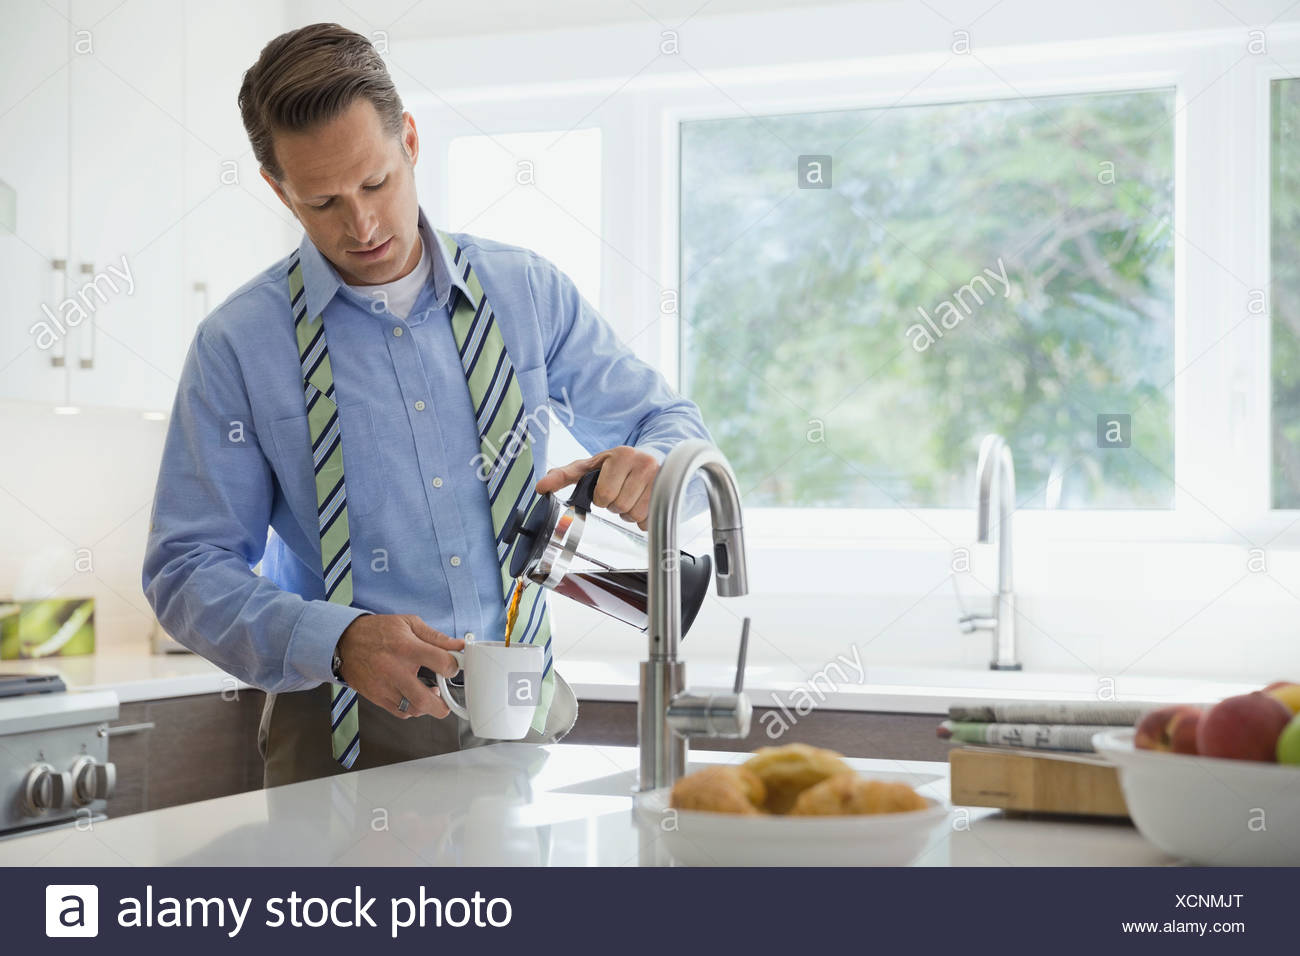 Businessman pouring coffee in domestic kitchen - Stock Image